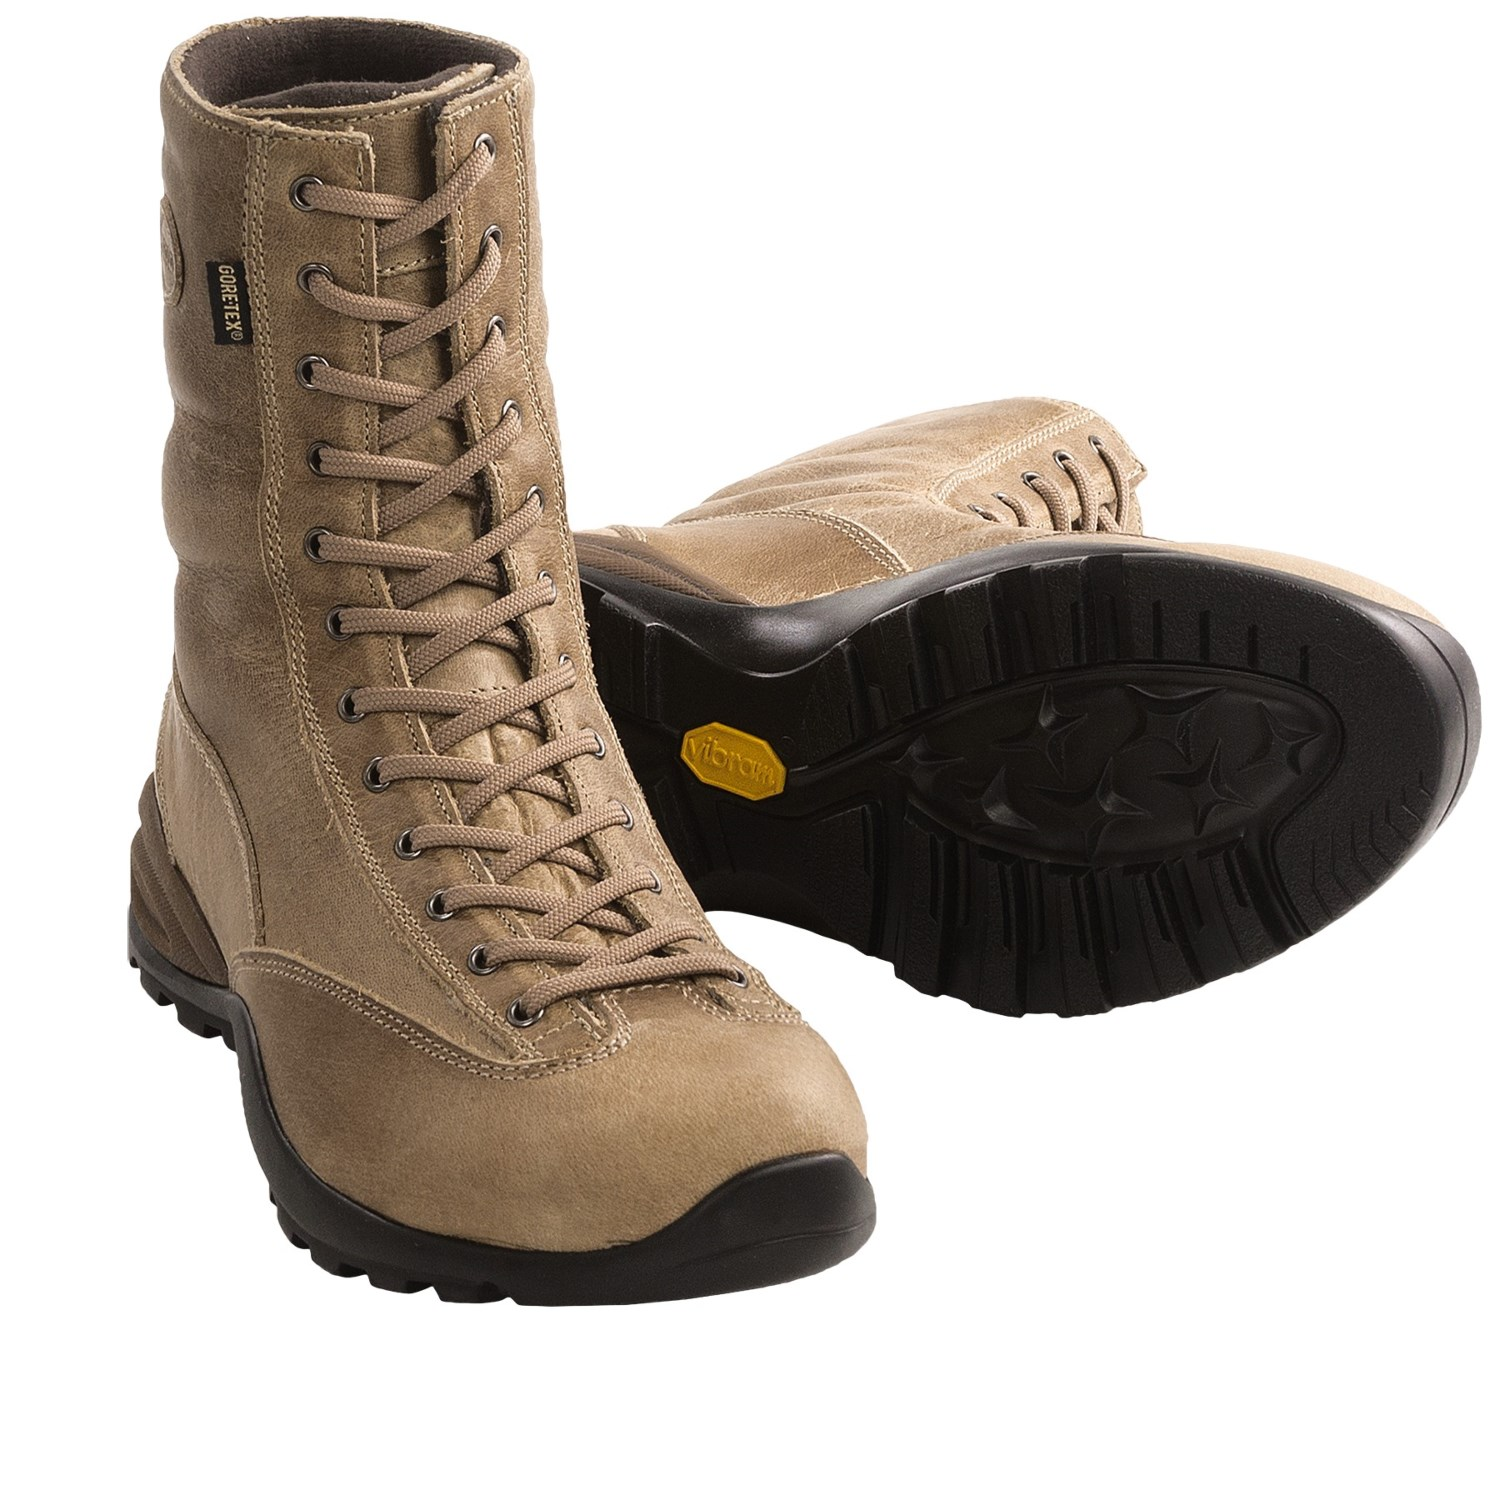 Awesome Womenu0026#39;s Boots Longford U2013 Dubarry | GORE-TEXu00ae